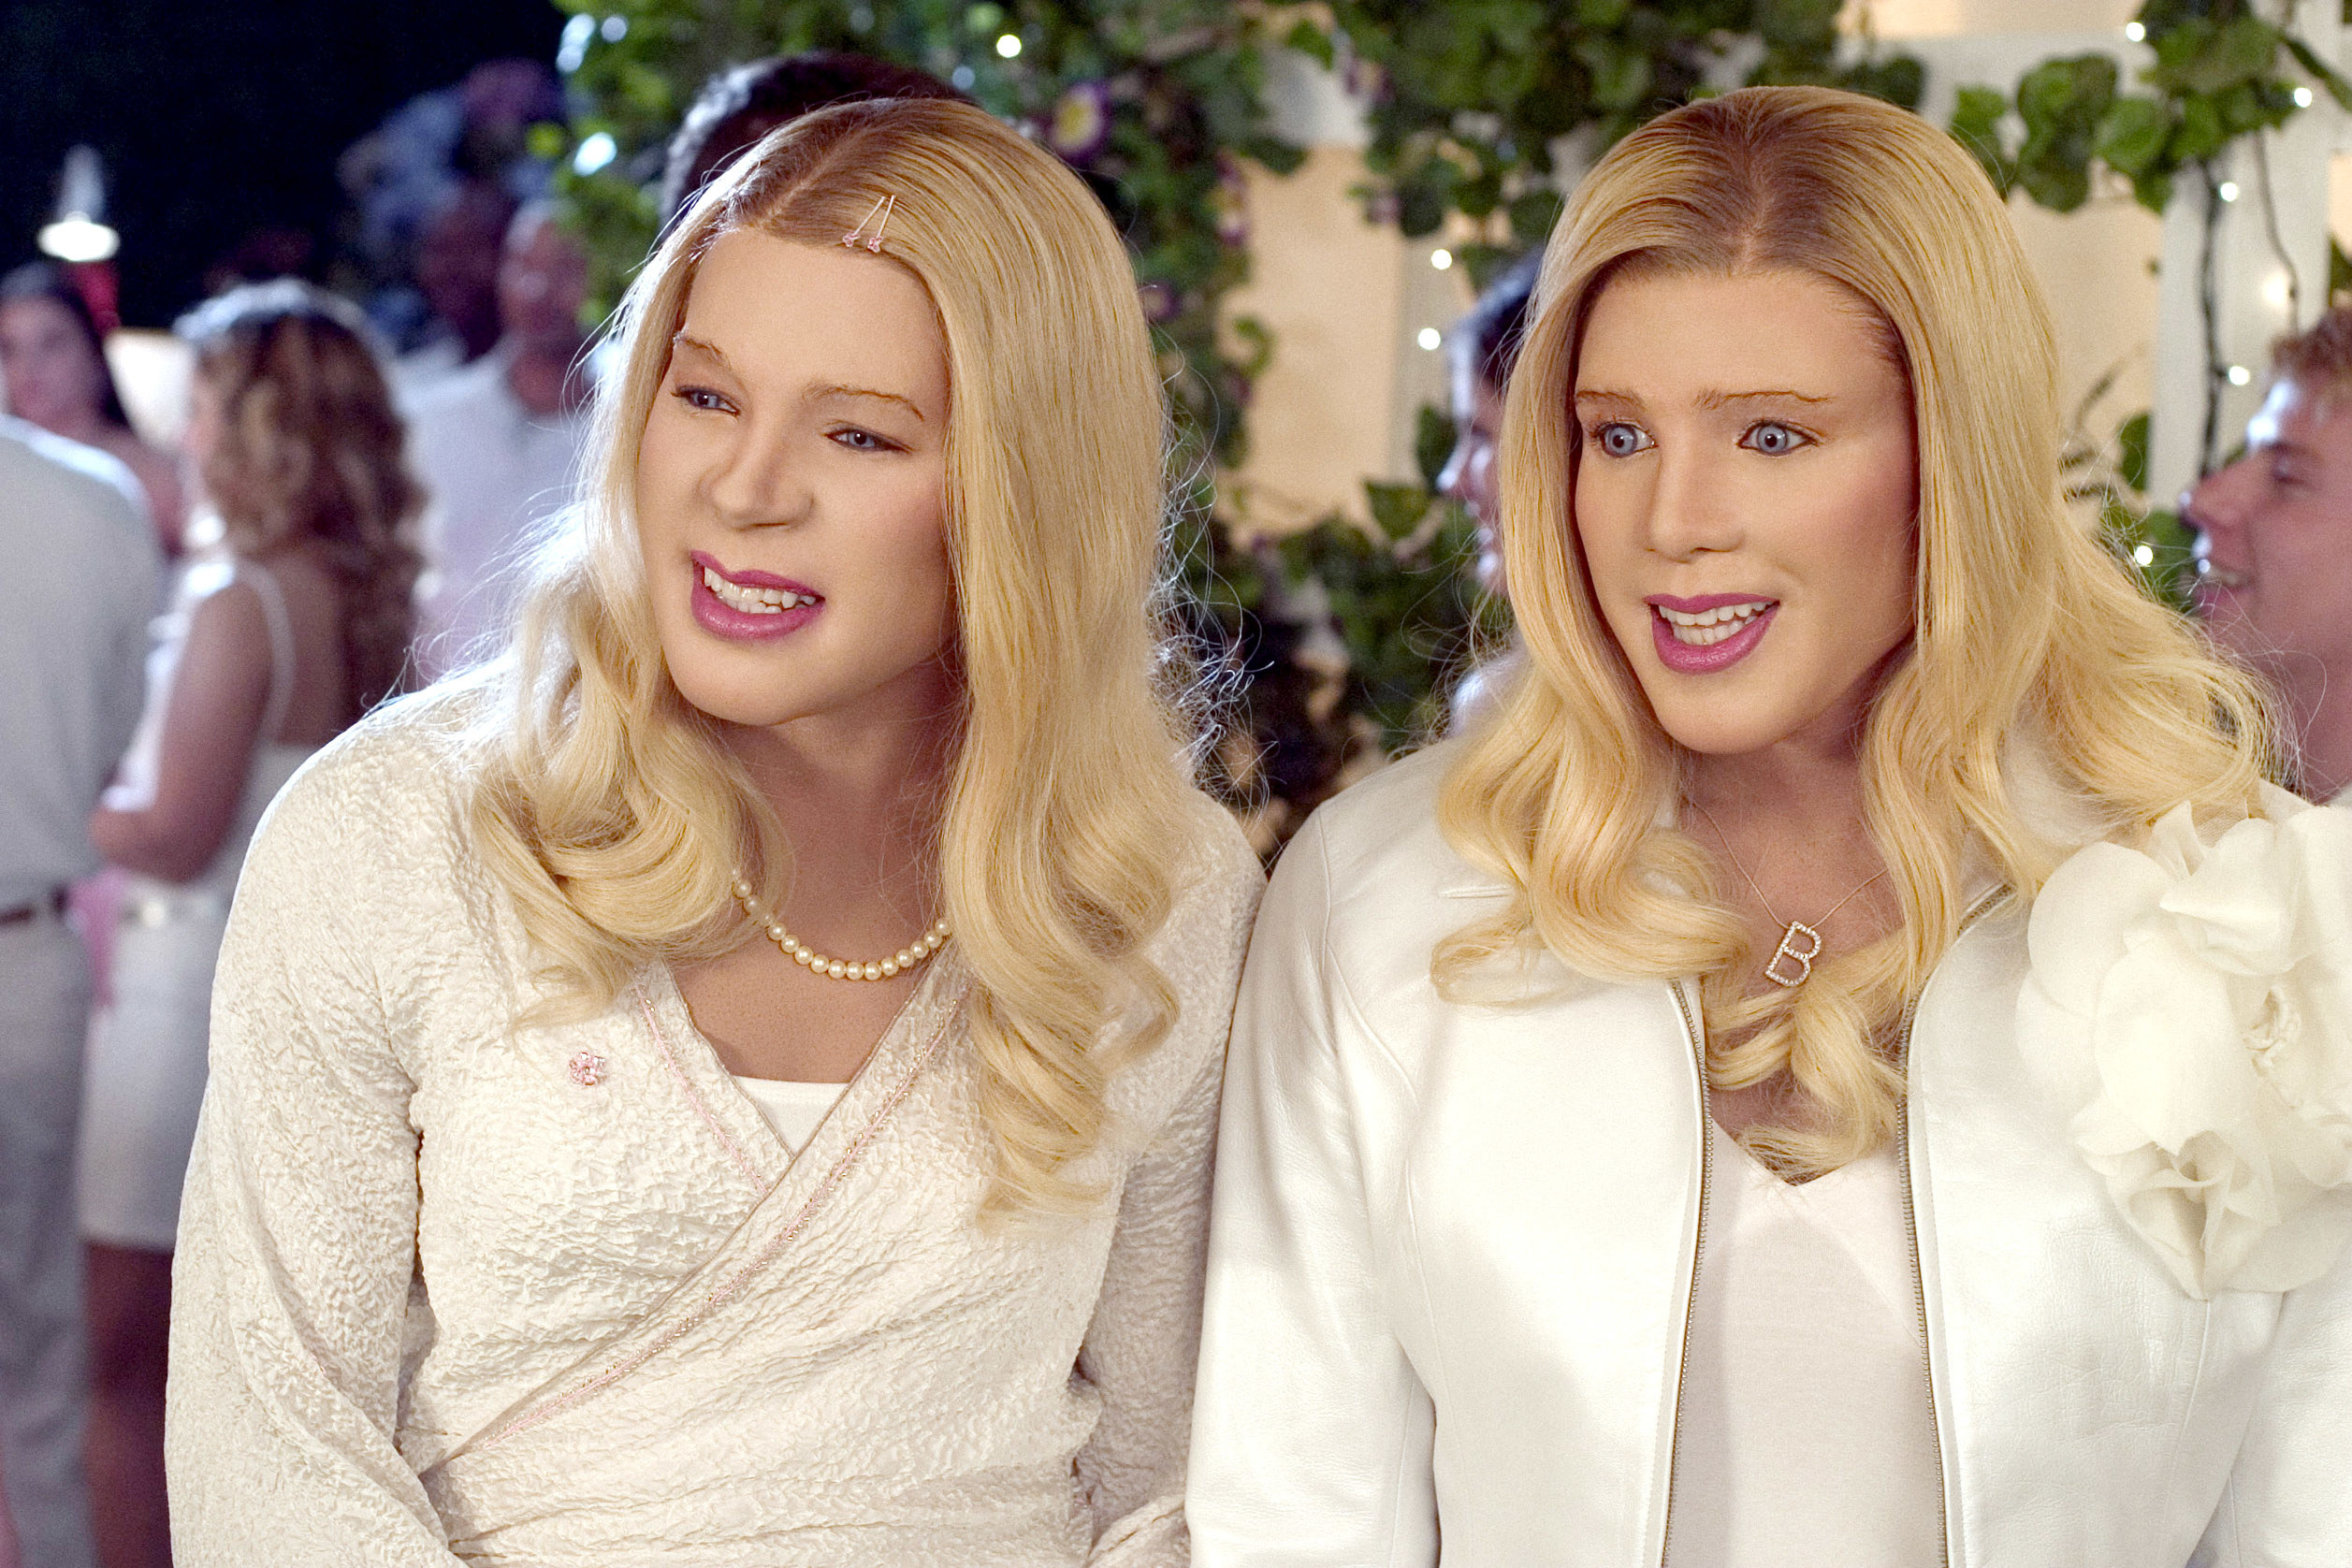 Marlon and Shawn as two white chicks, with long blonde wigs